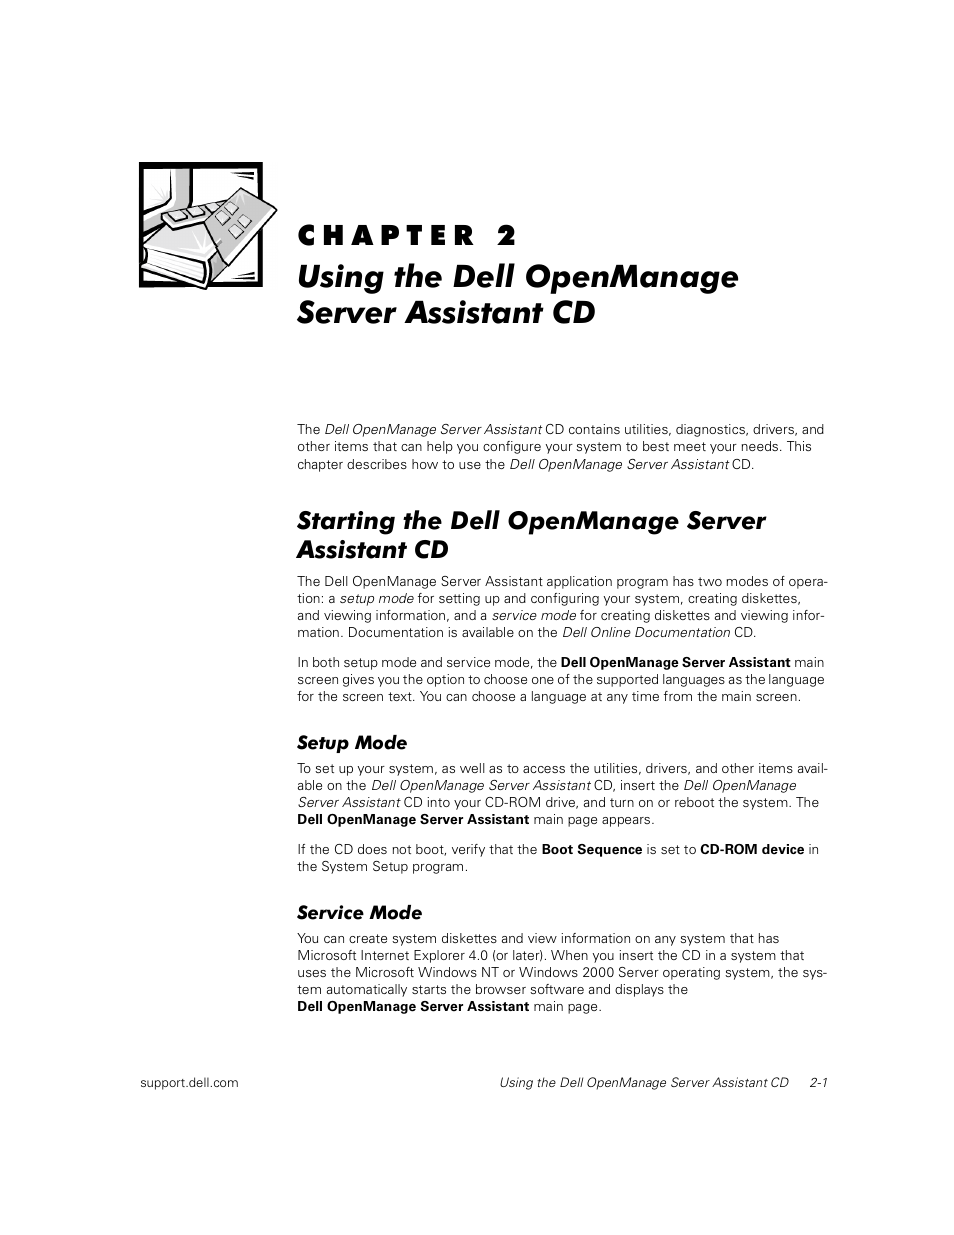 Using the dell openmanage server assistant cd, Starting the